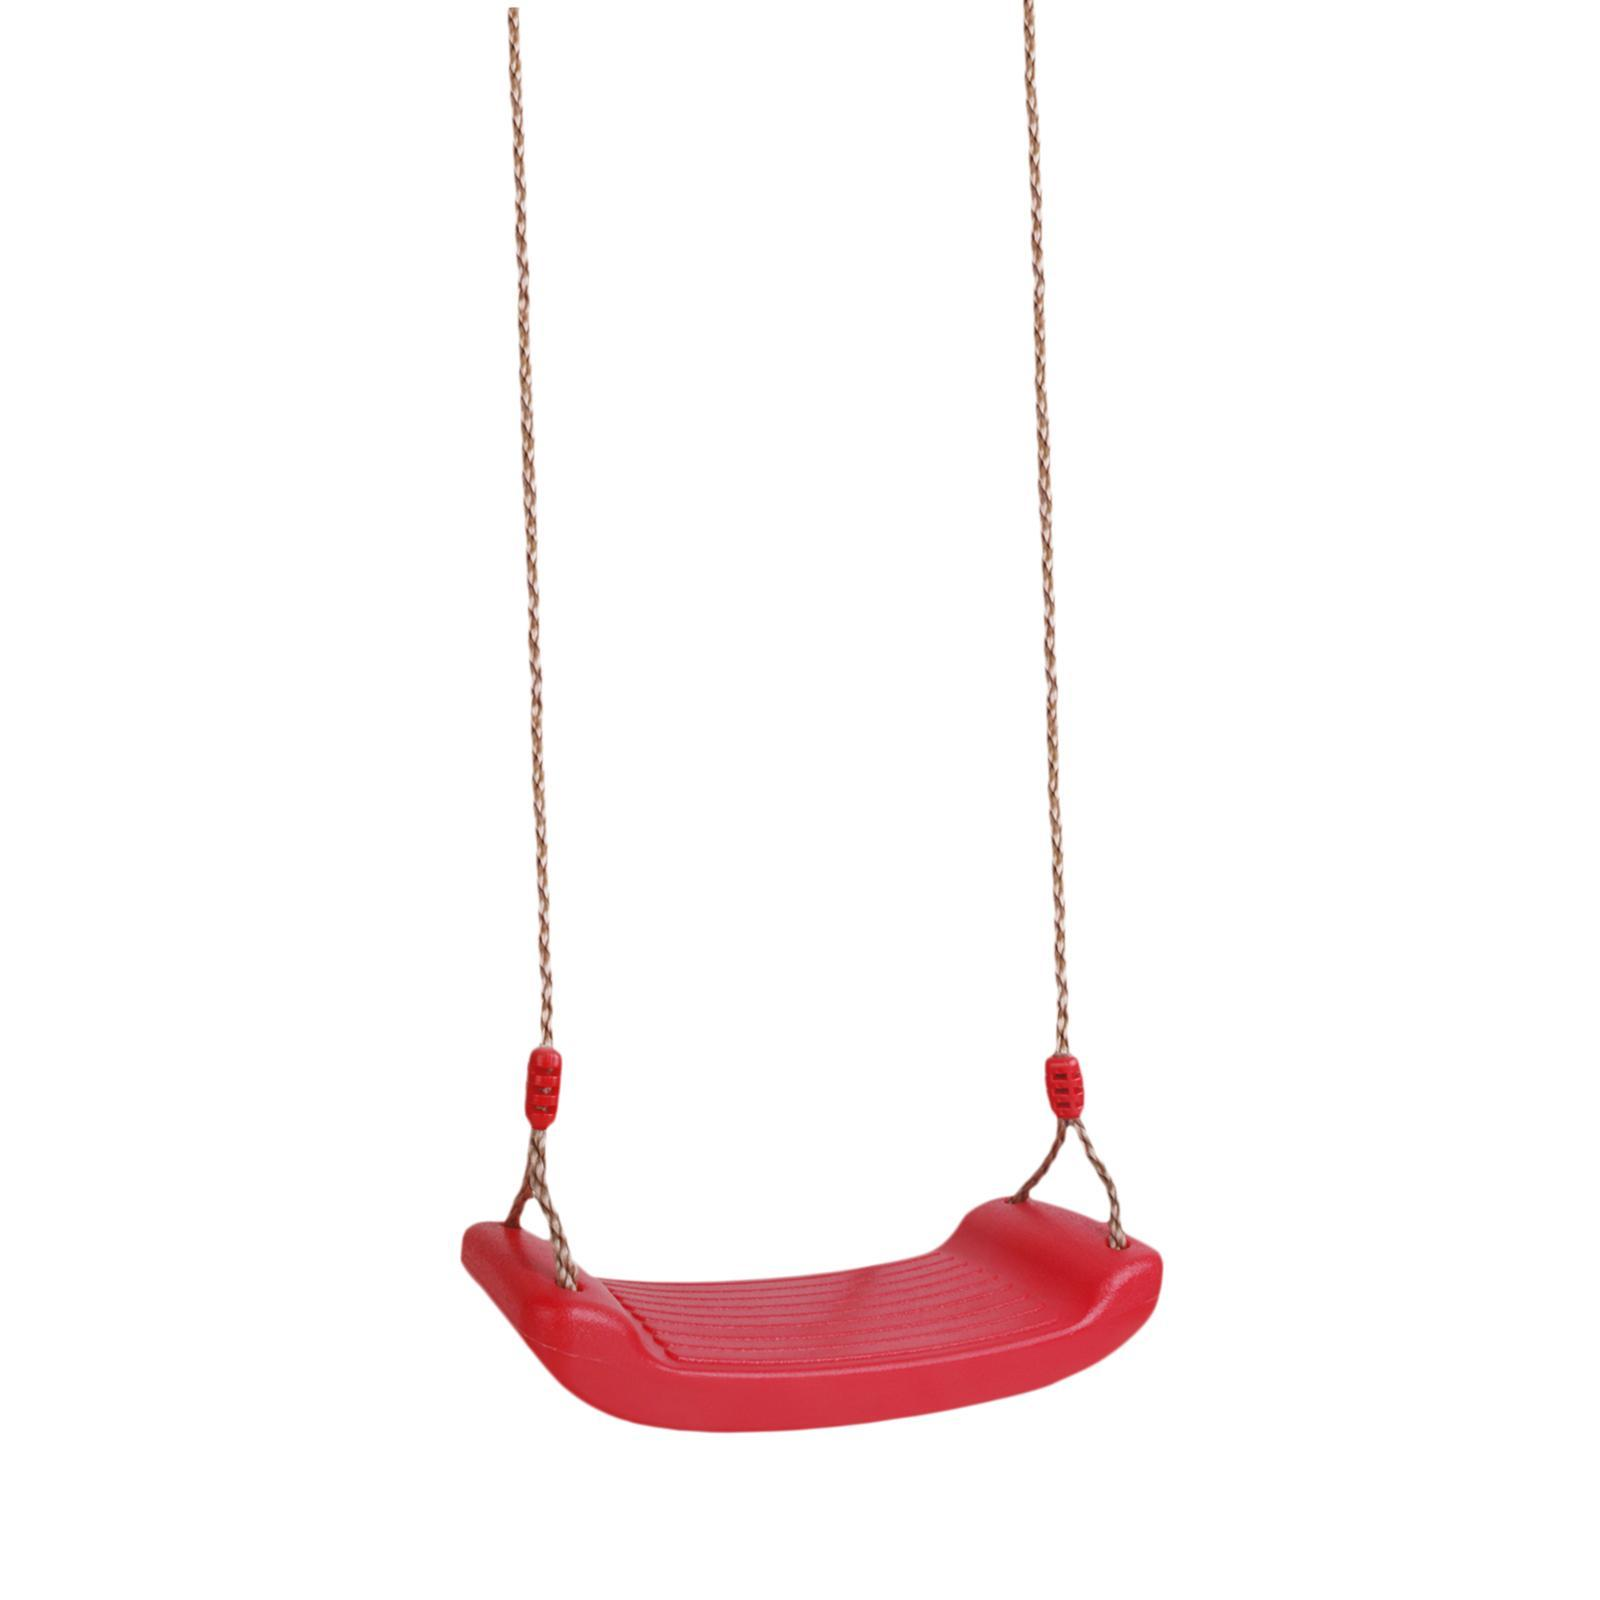 Garden-Swing-Set-Seat-Rope-Strap-Connector-Chain-Kid-Adult-Outdoor-Fun-Play-Game miniatuur 9